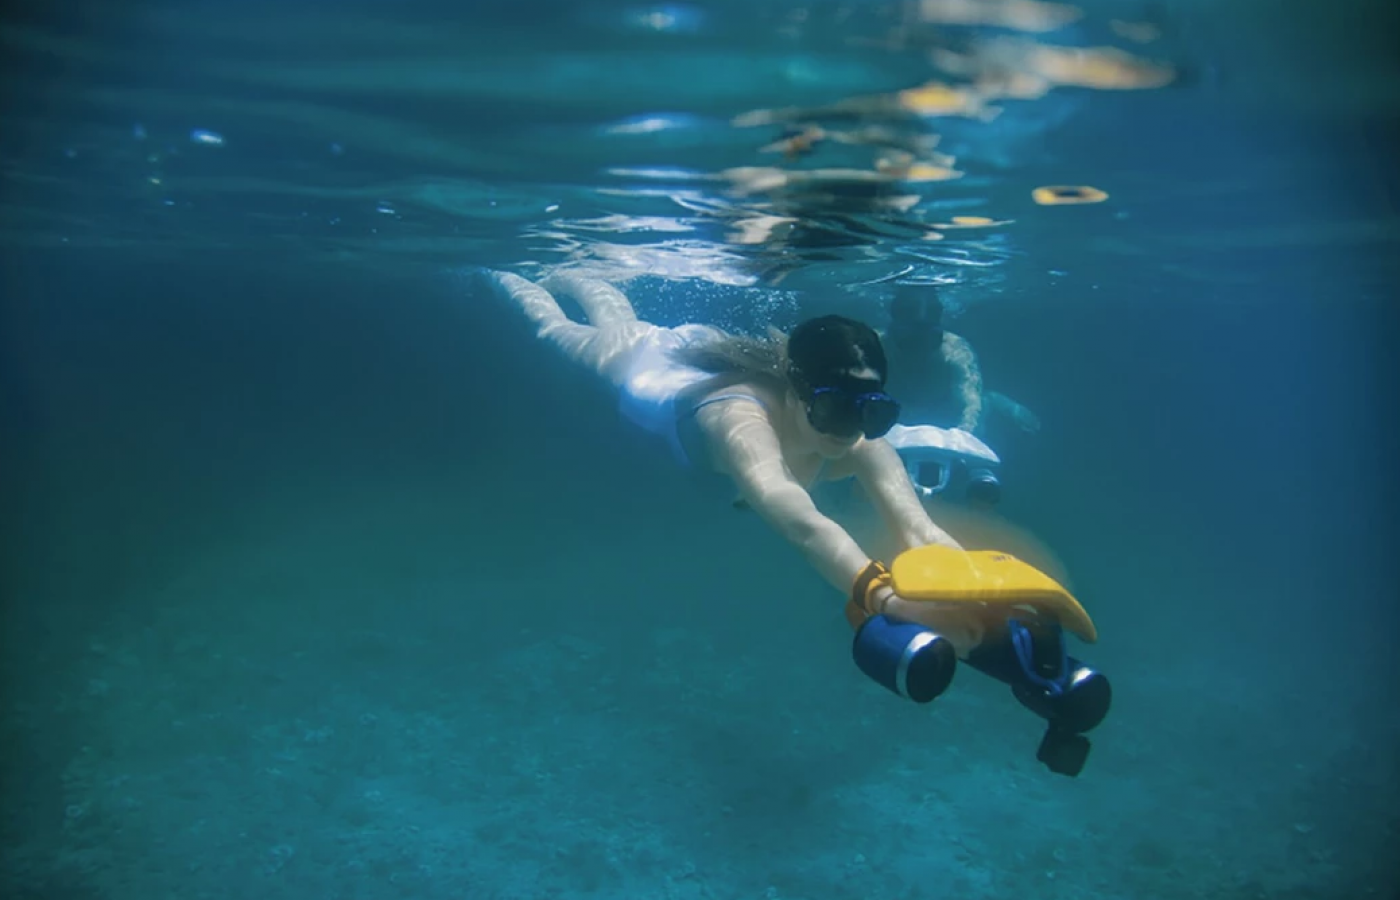 Snorkelling toys and equipment